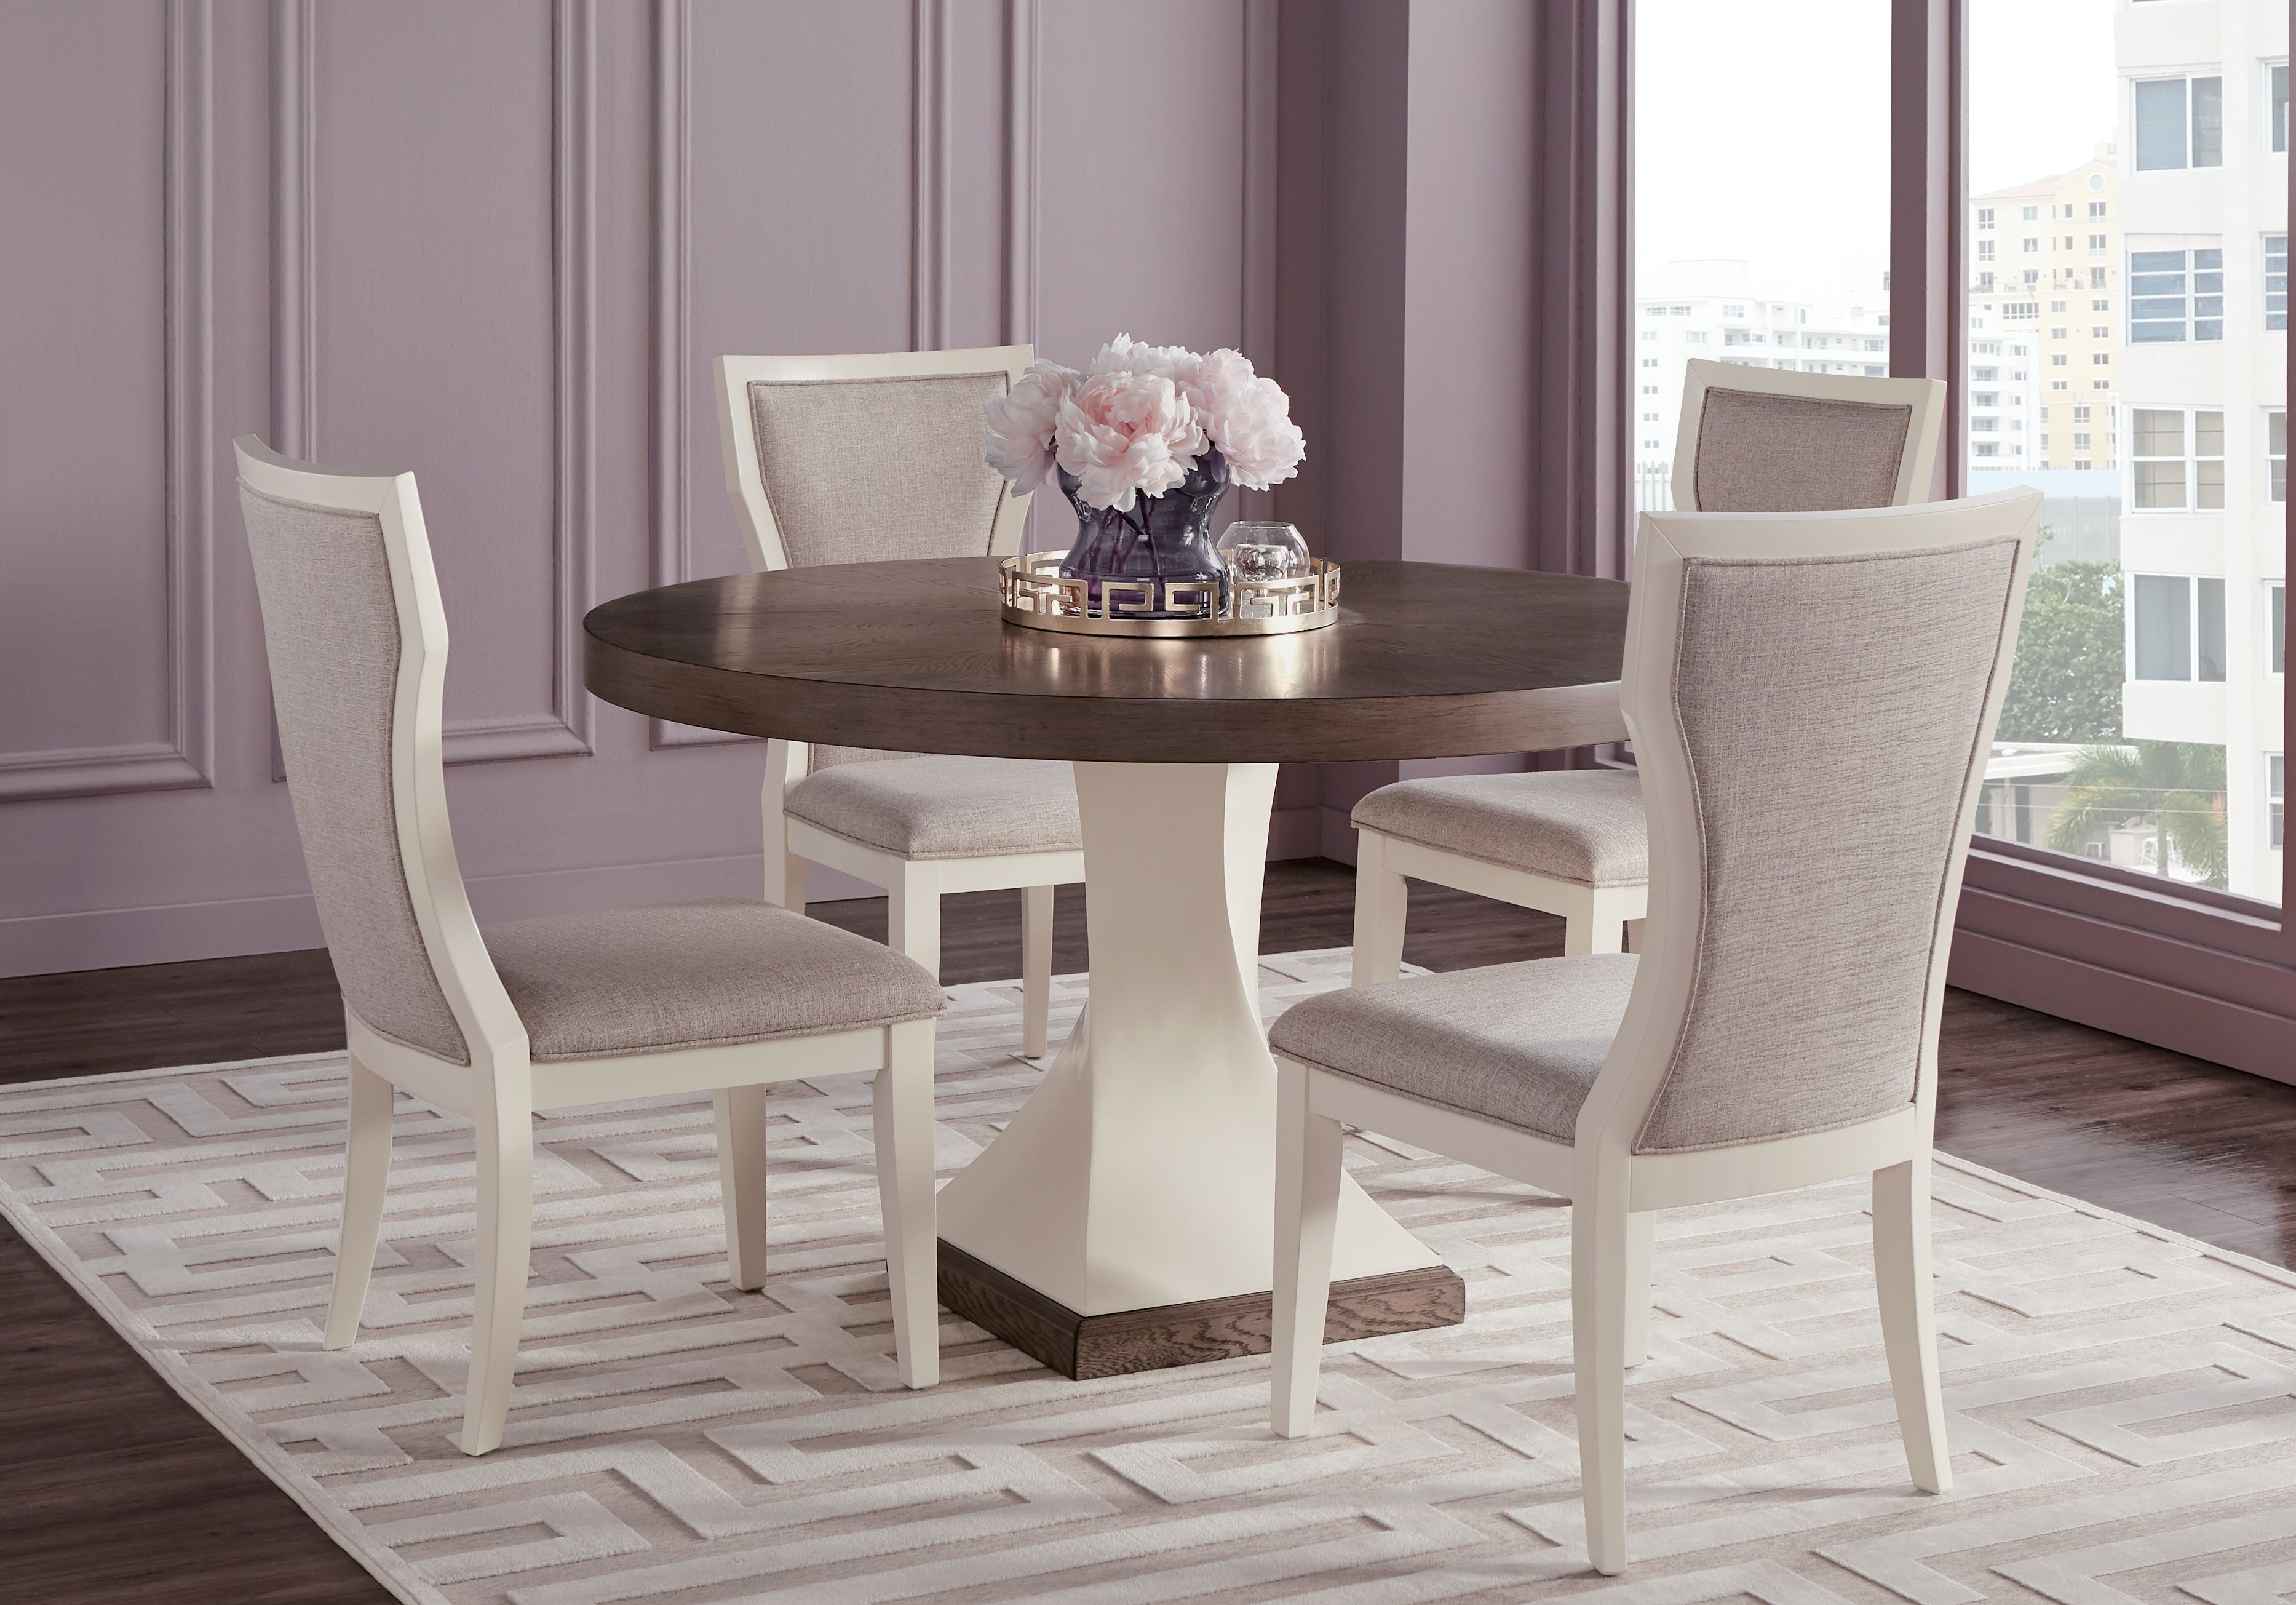 Well Known Lamotte 5 Piece Dining Sets Inside Sofia Vergara Santa Fiora White 5 Pc Round Dining Room In (View 8 of 20)